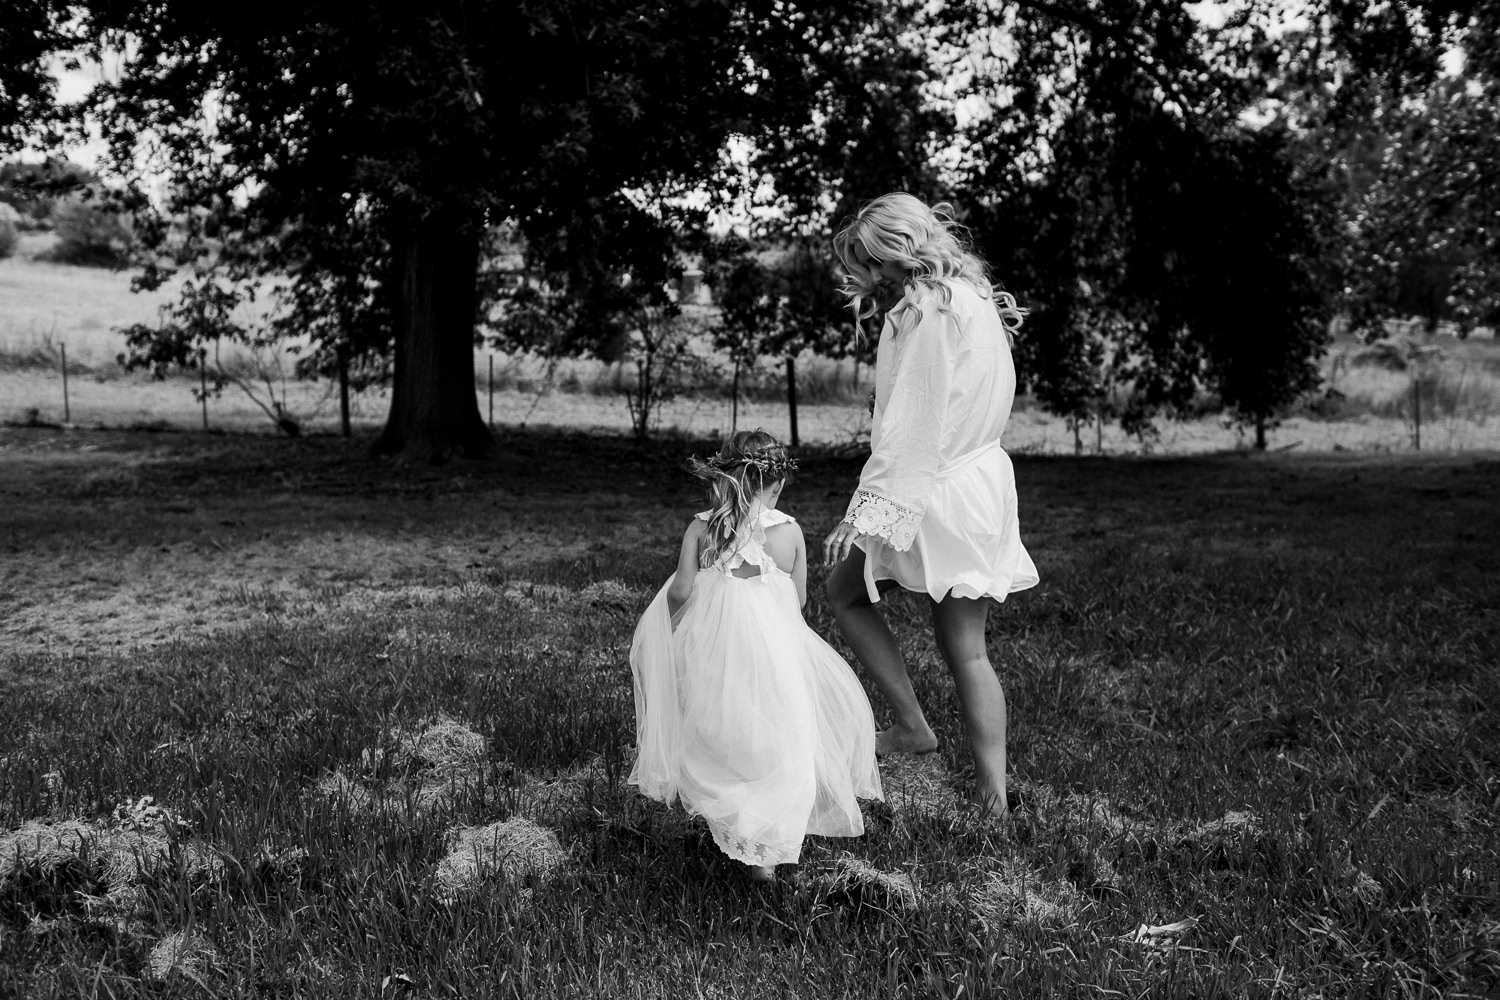 zonzo-estate-yarra-valley-wedding-photographer_0031.jpg